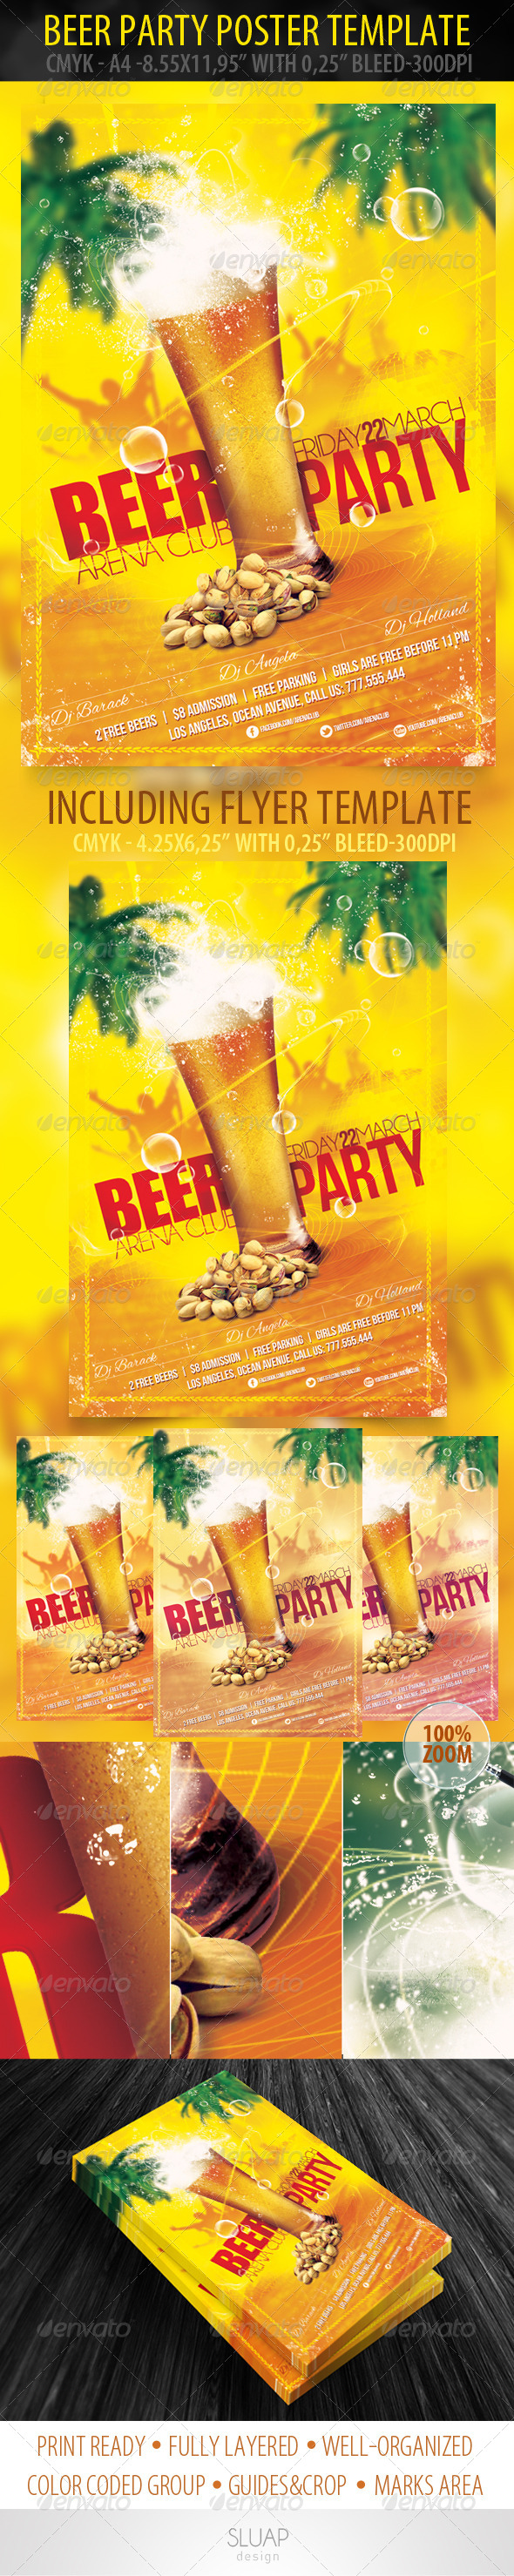 GraphicRiver Beer Party Poster & Flyer Template 3951776